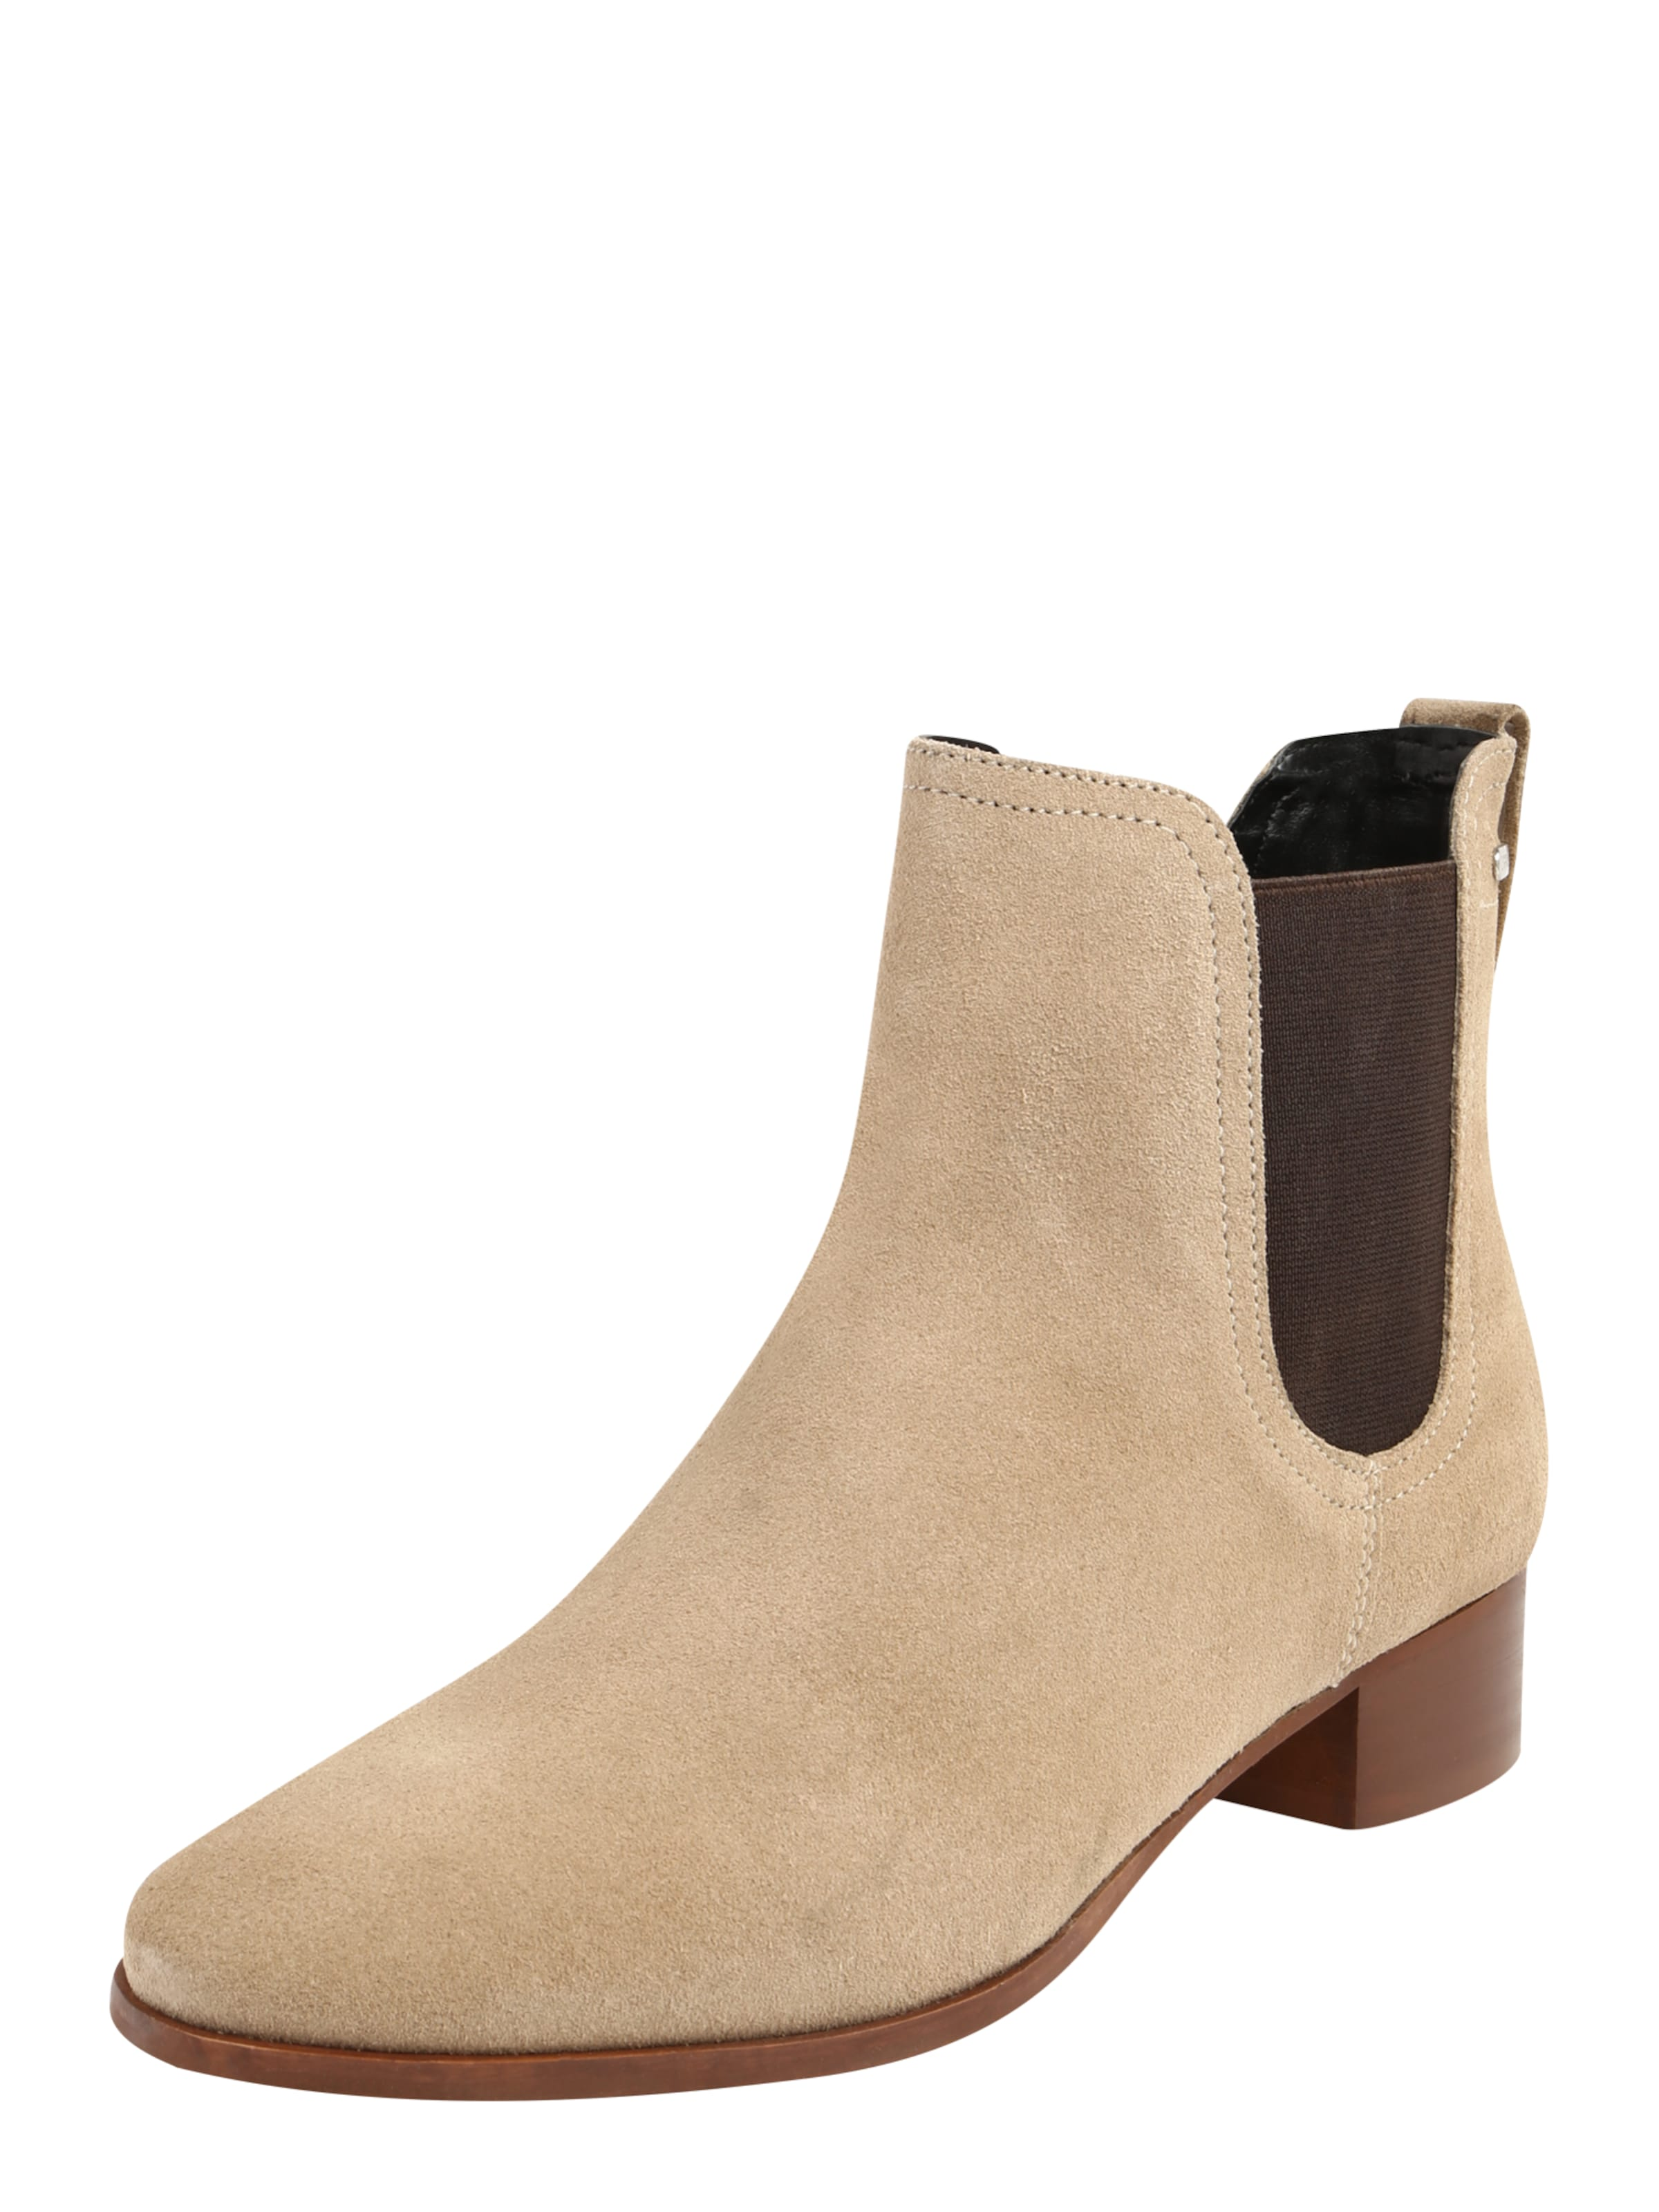 Formal ' Esprit Shoes In Bootie Ebles Tg Beige Stiefelette mwvn0yON8